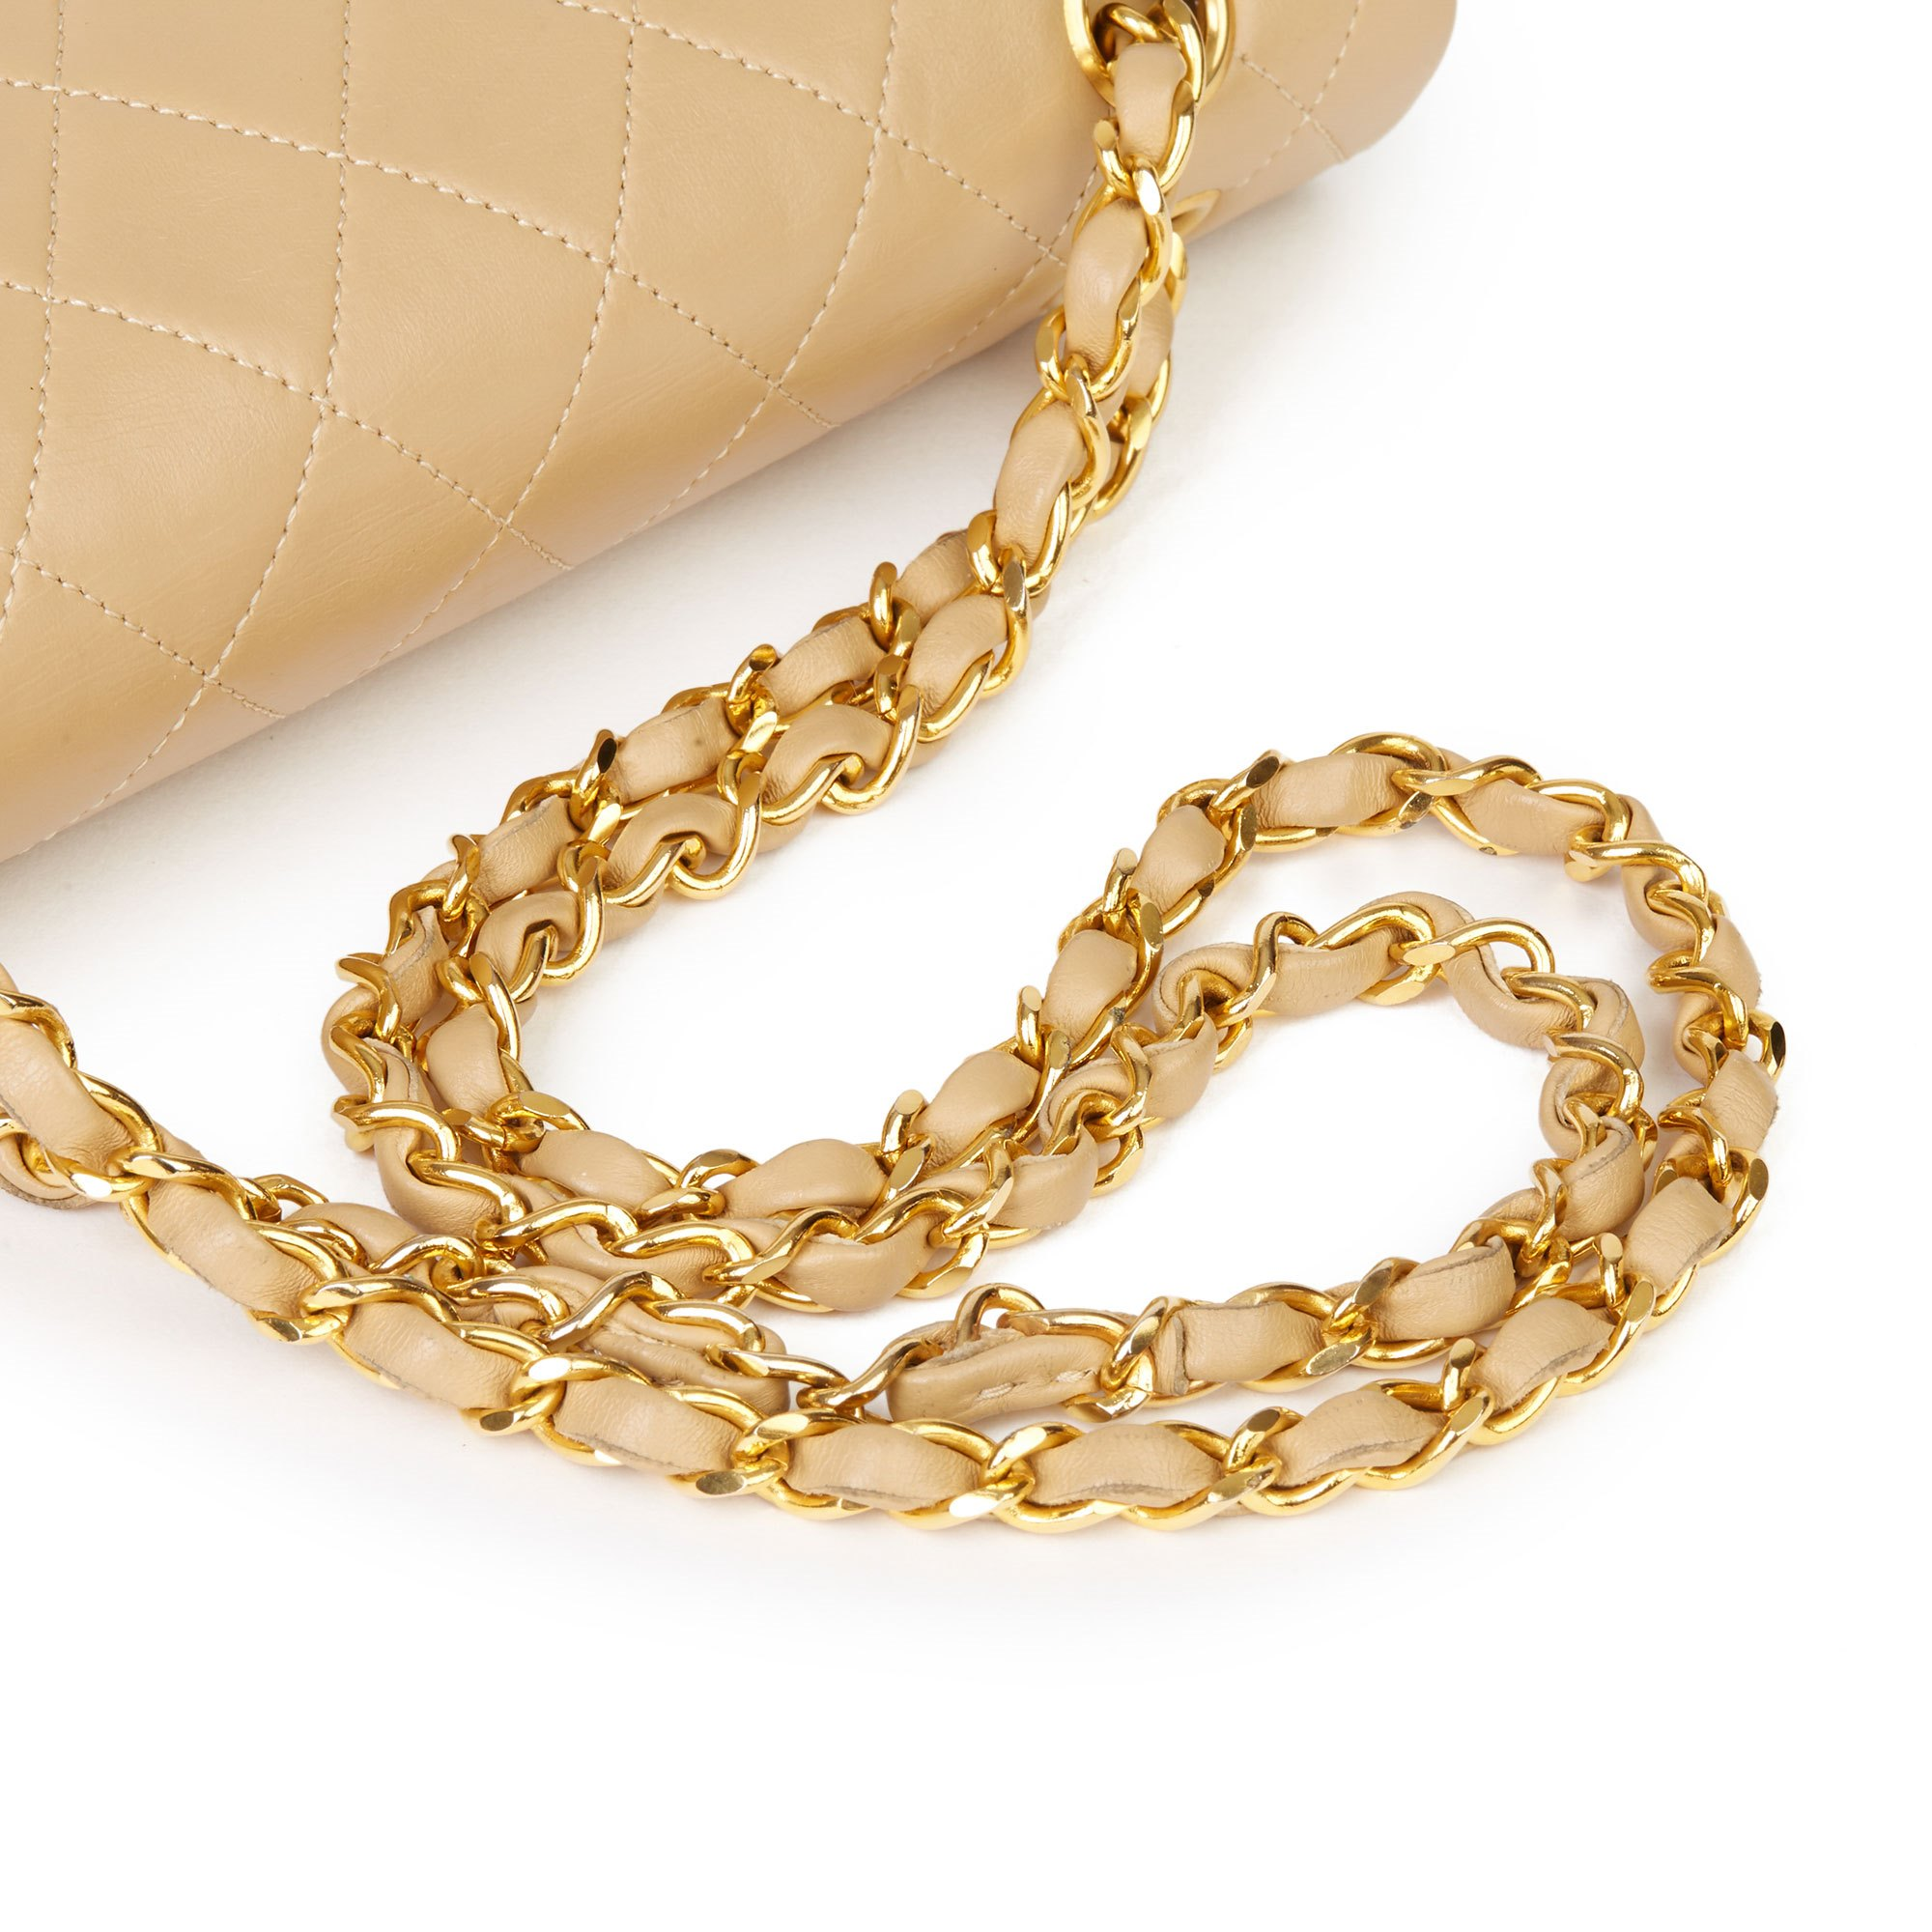 Chanel Beige Quilted Lambskin Vintage Medium Tall Classic Double Flap Bag